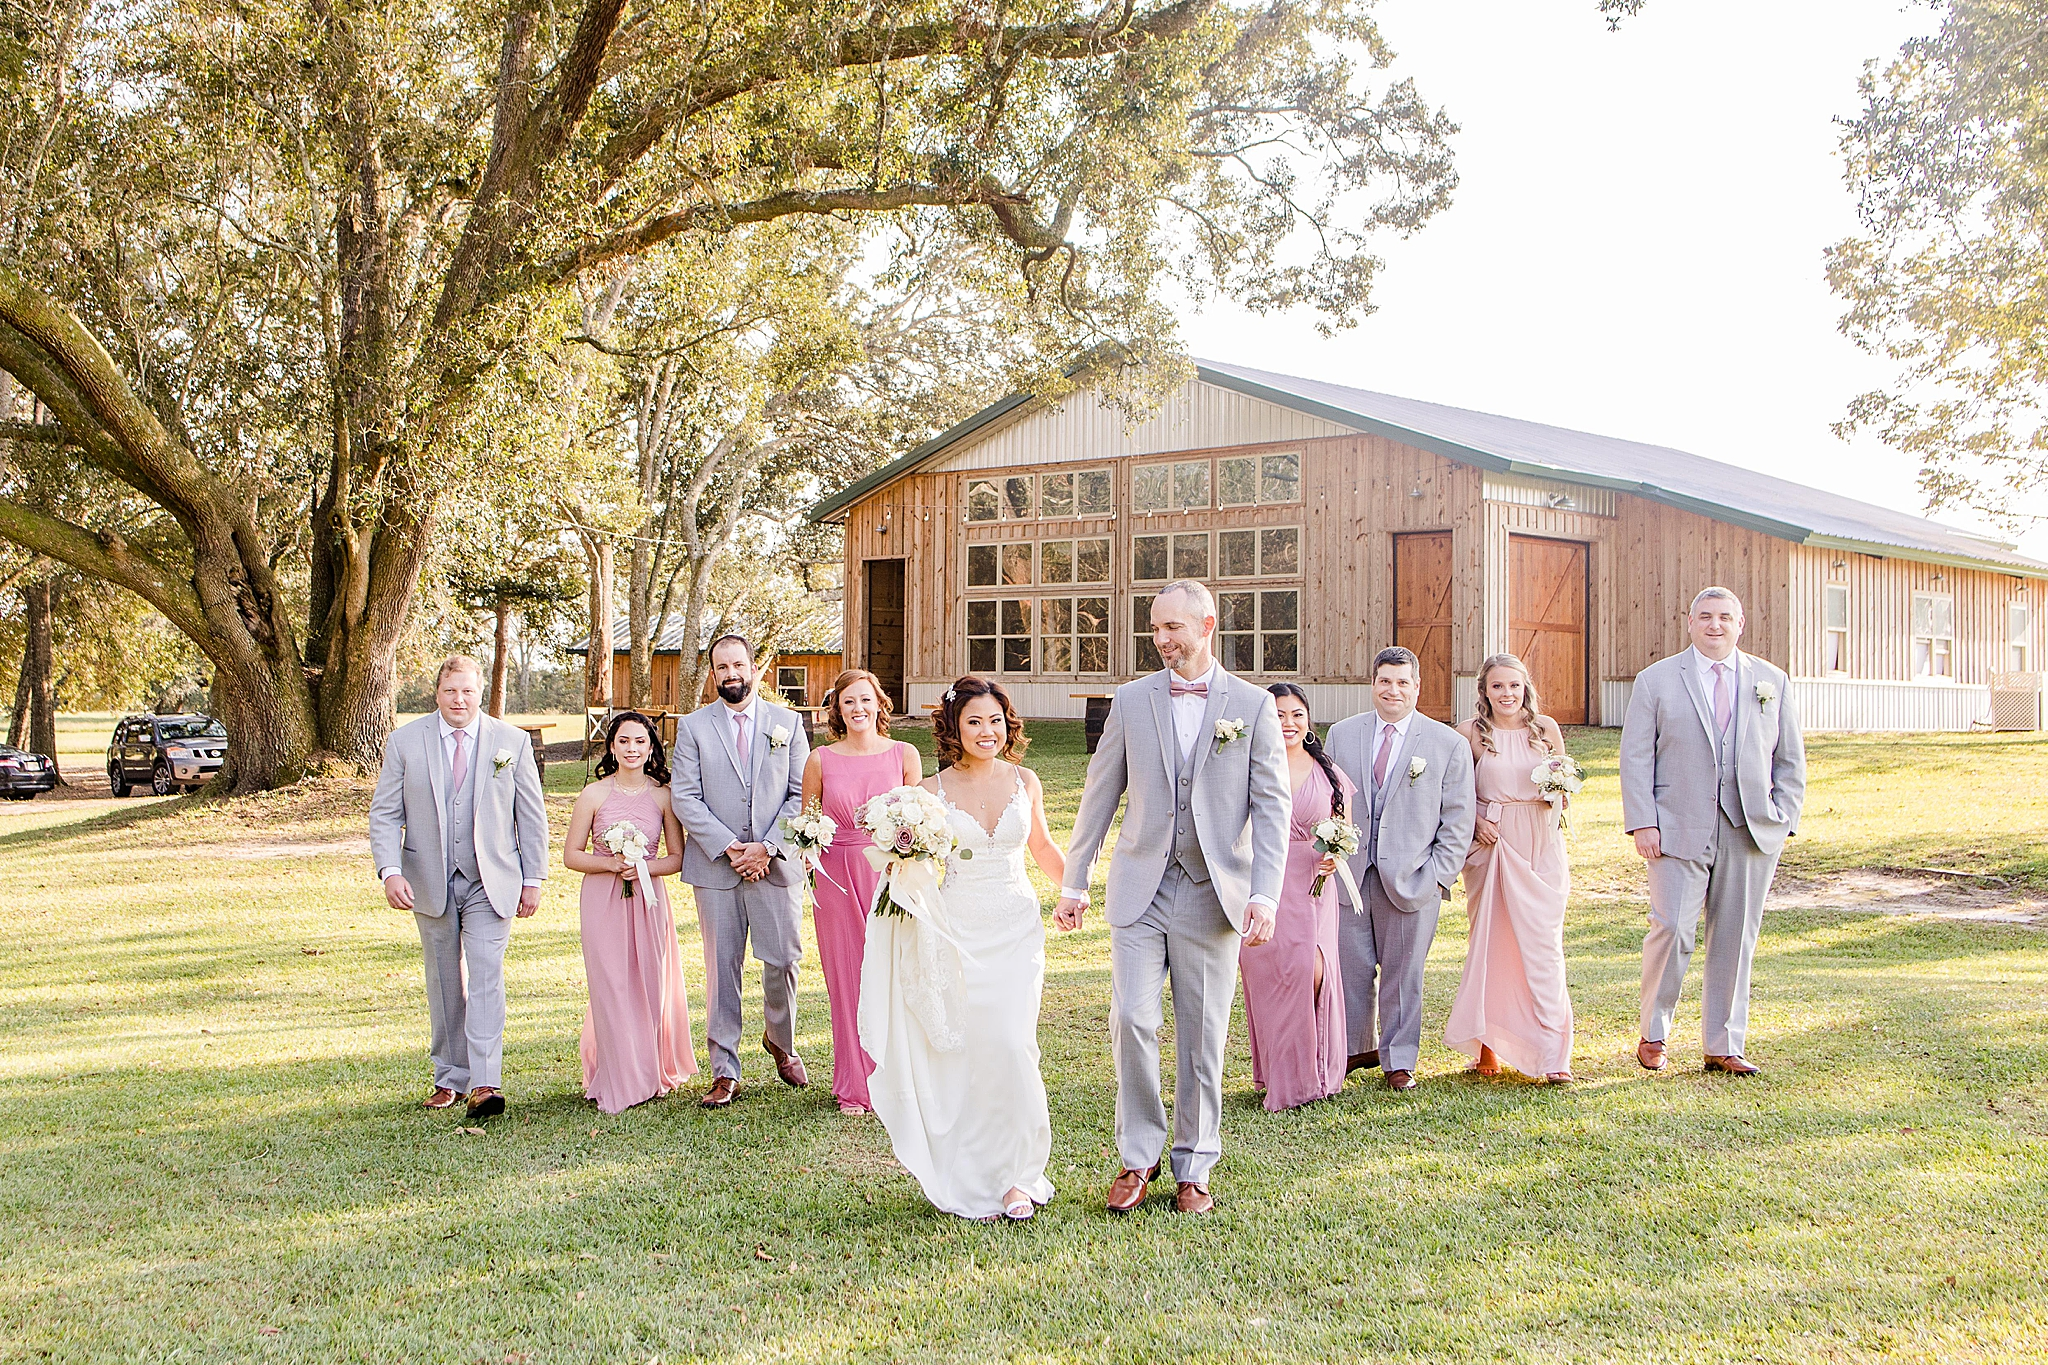 Goodie and Smith Weddings shares about their wedding day process